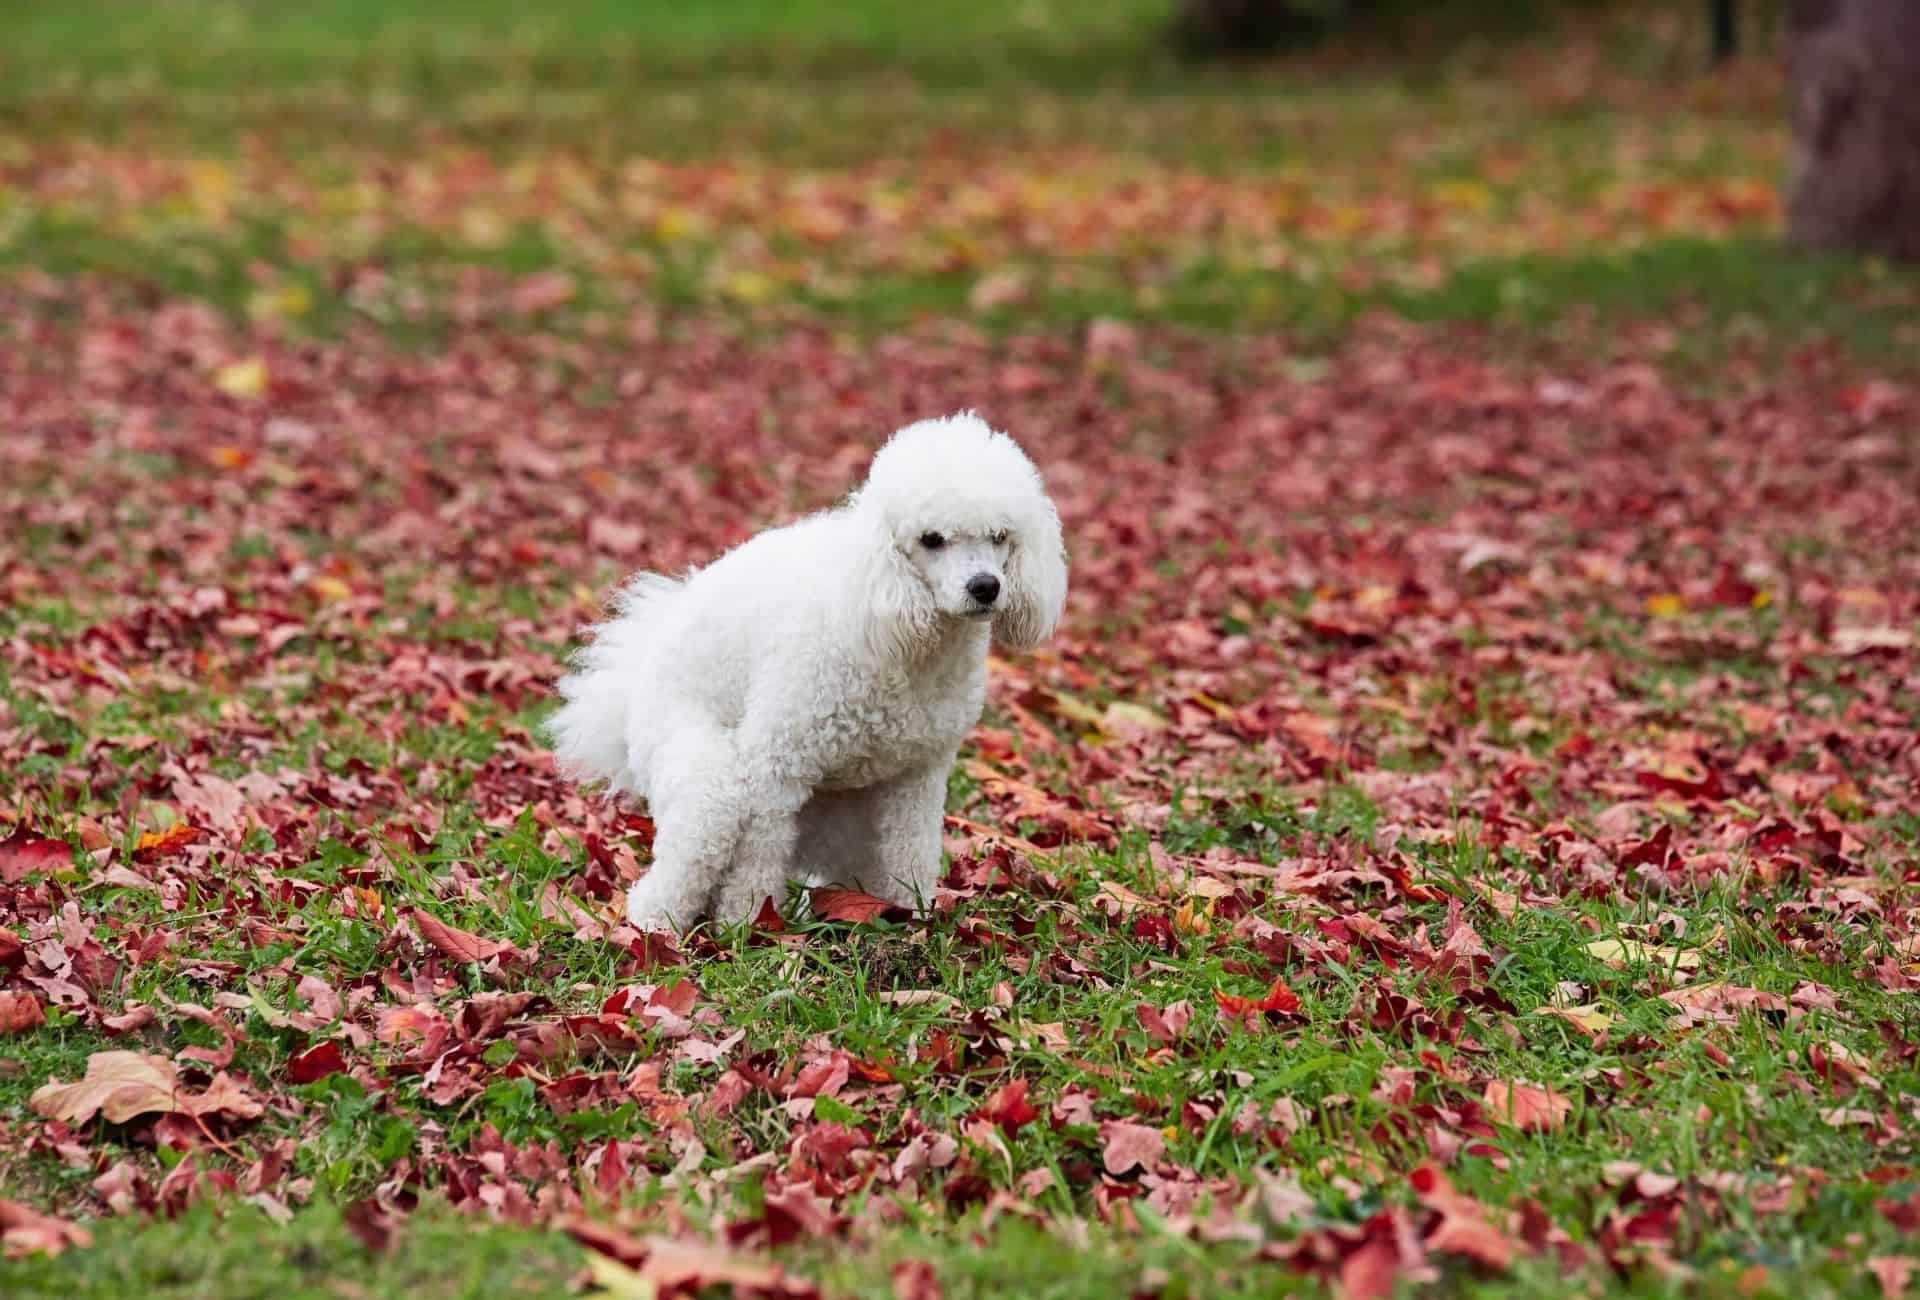 Poodle pooping on grass